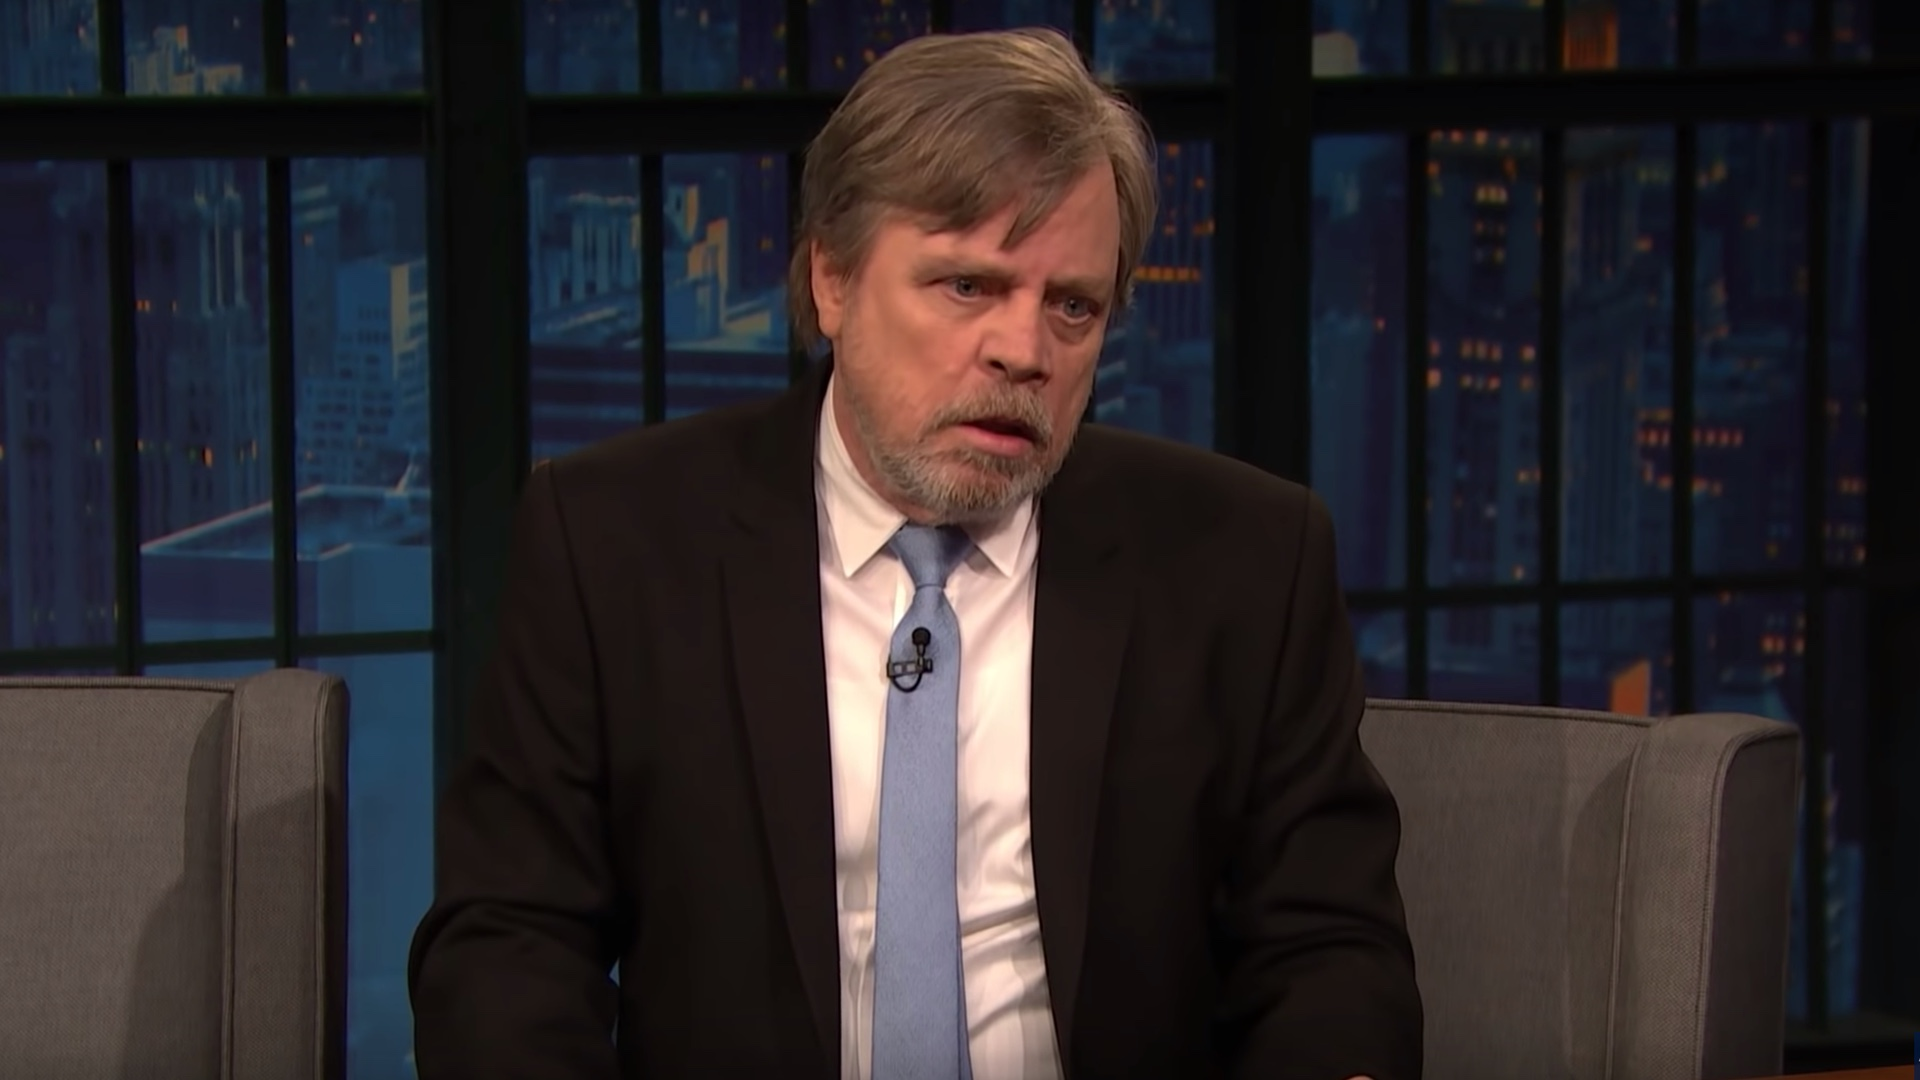 watch-mark-hamill-do-a-great-harrison-ford-impression-while-sharing-a-star-wars-story-social.jpg